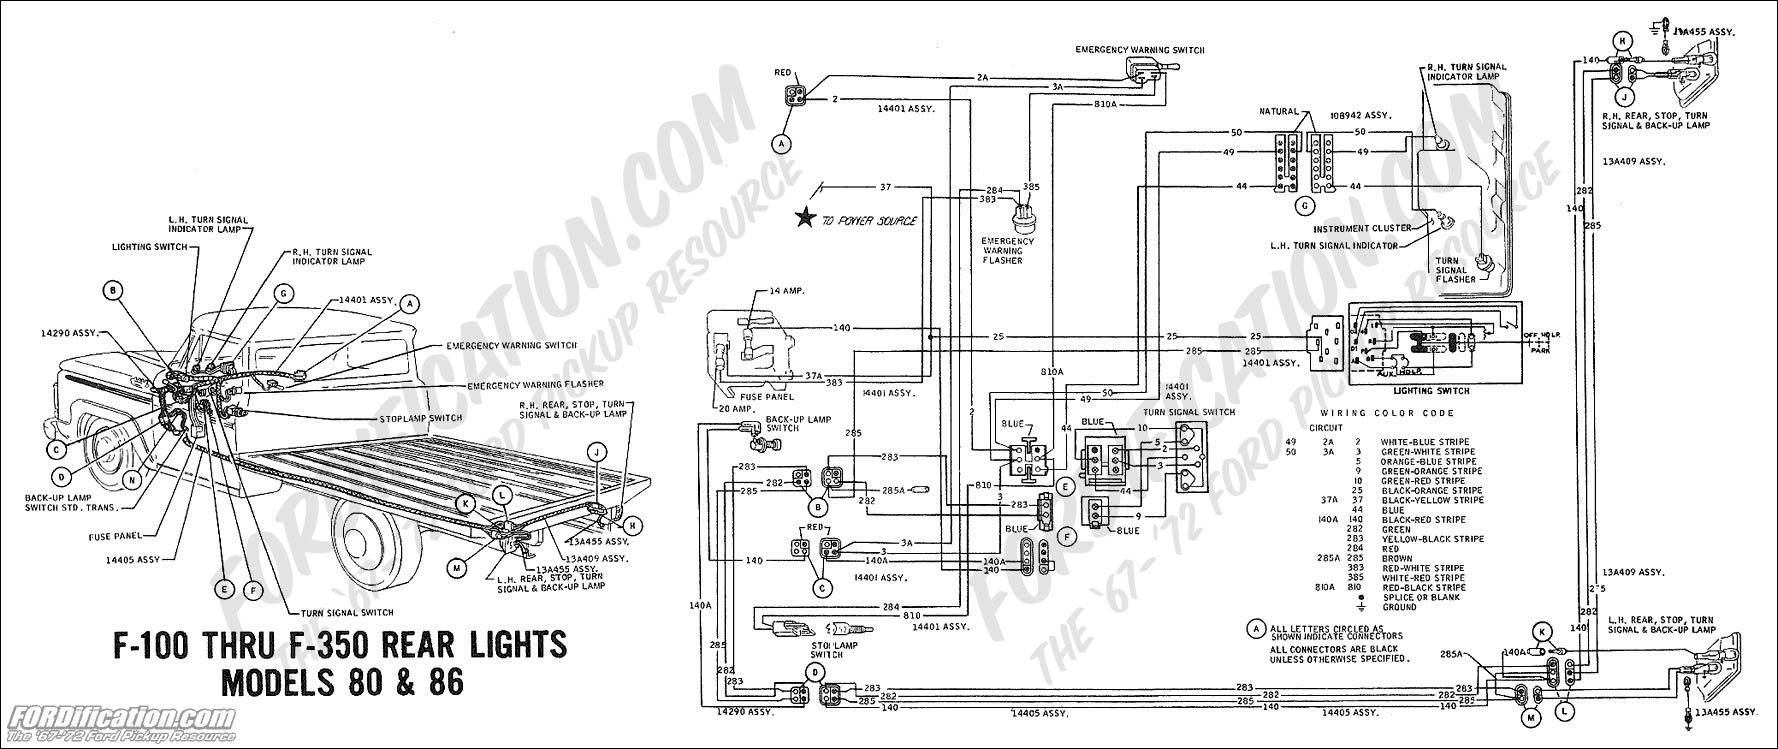 wiring_69rearlights mdls80 86 1994 f700 wiring diagram on 1994 download wirning diagrams 1979 Corvette Fuse Box Diagram at aneh.co